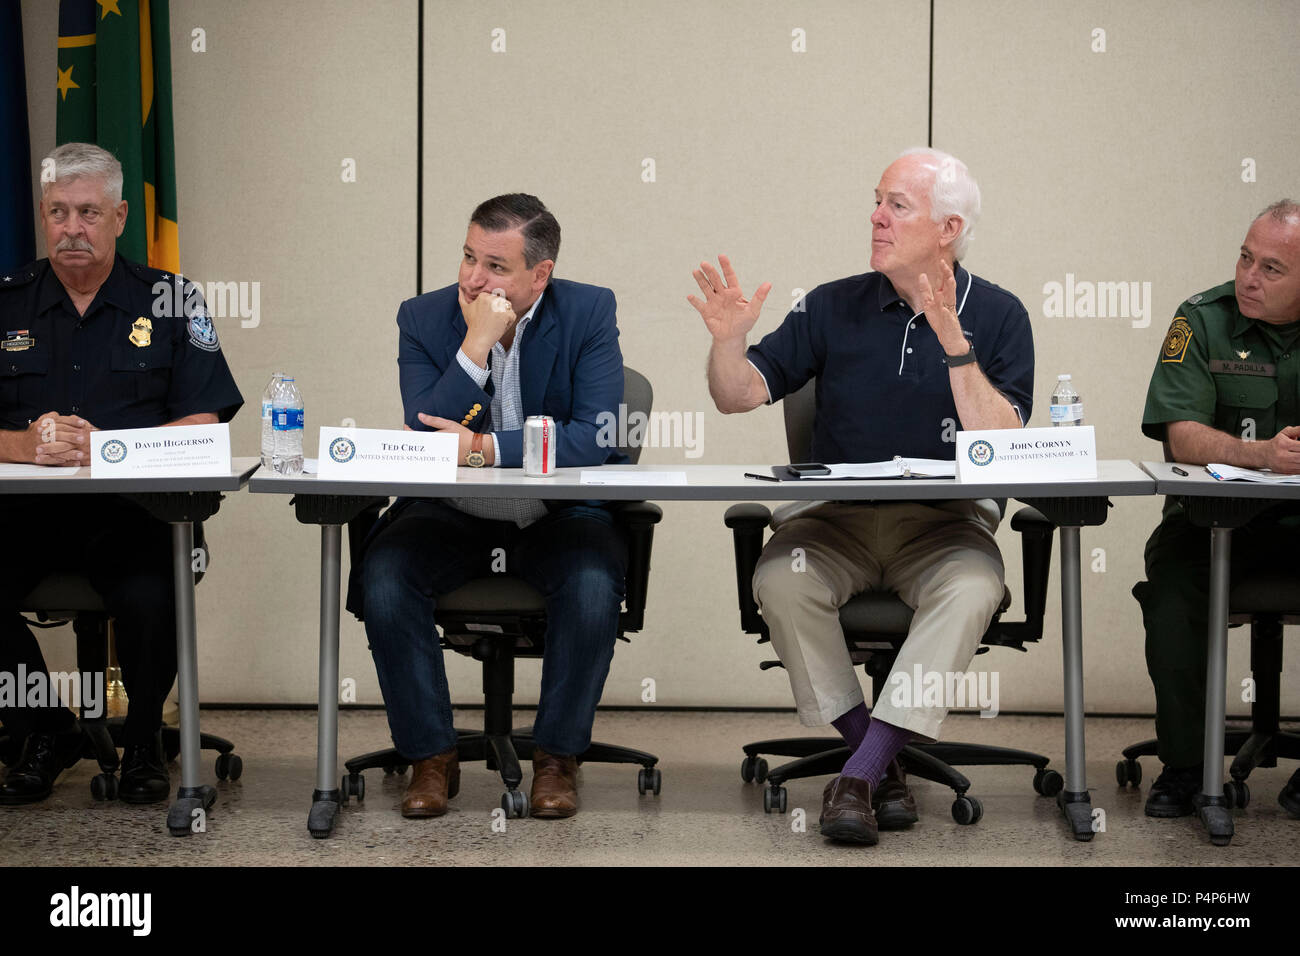 U.S. Sen. John Cornyn speaks while Sen. Ted Cruz and others listen as federal and Texas officials and stakeholders meet in a round-table discussion of the immigration crisis hitting the Texas-Mexico border. Confusion and public outrage reigned regarding the Trump administration's policy of separating undocumented immigrant parents from their children after crossing into the U.S. from Mexico. - Stock Image